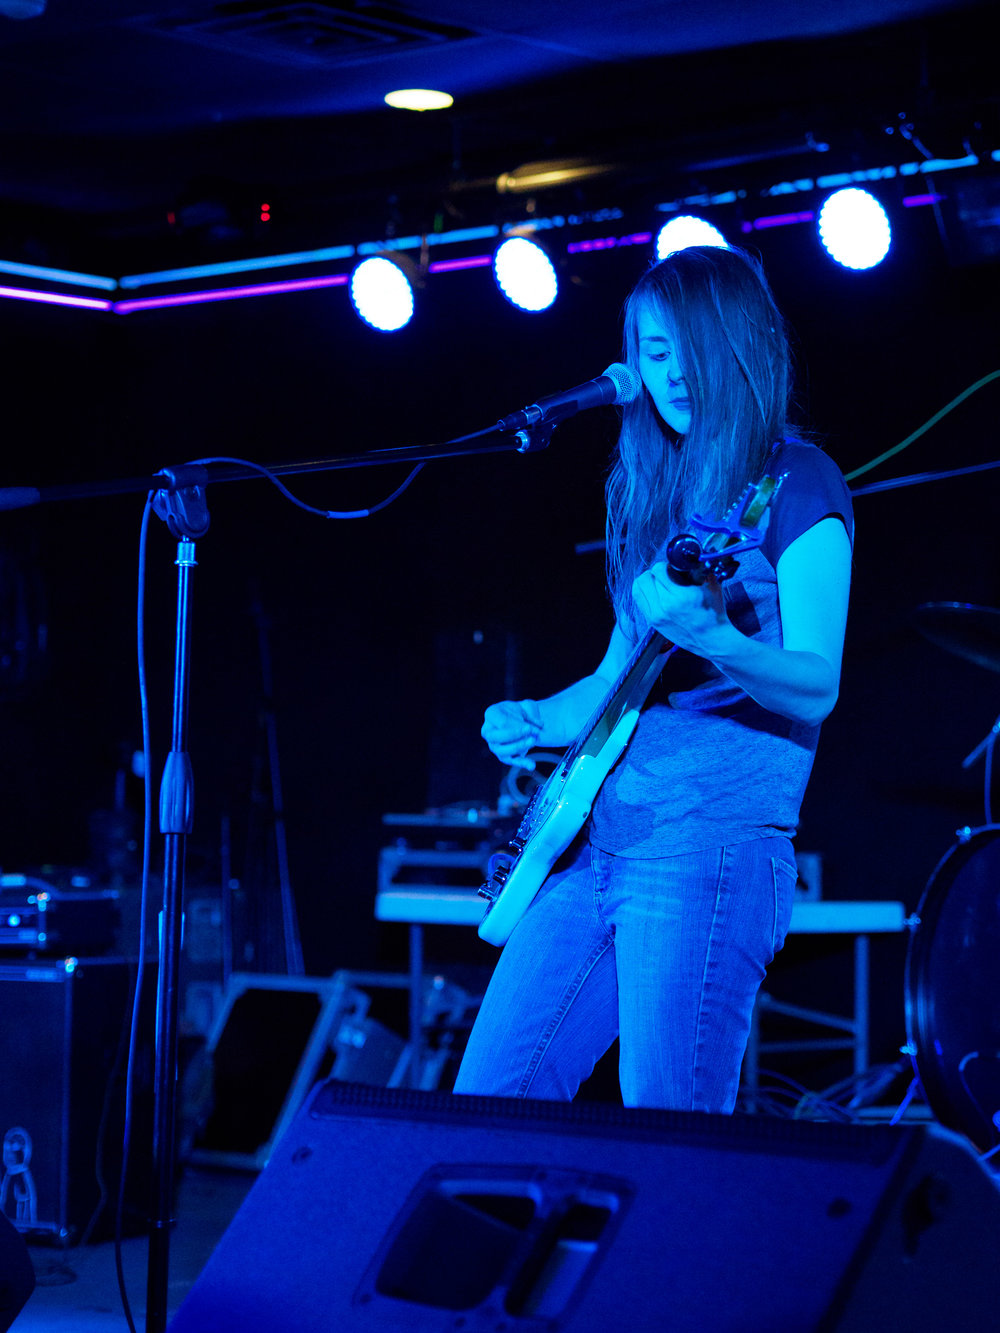 17-06-10_Concert_at_the_Foundry_6100504.JPG